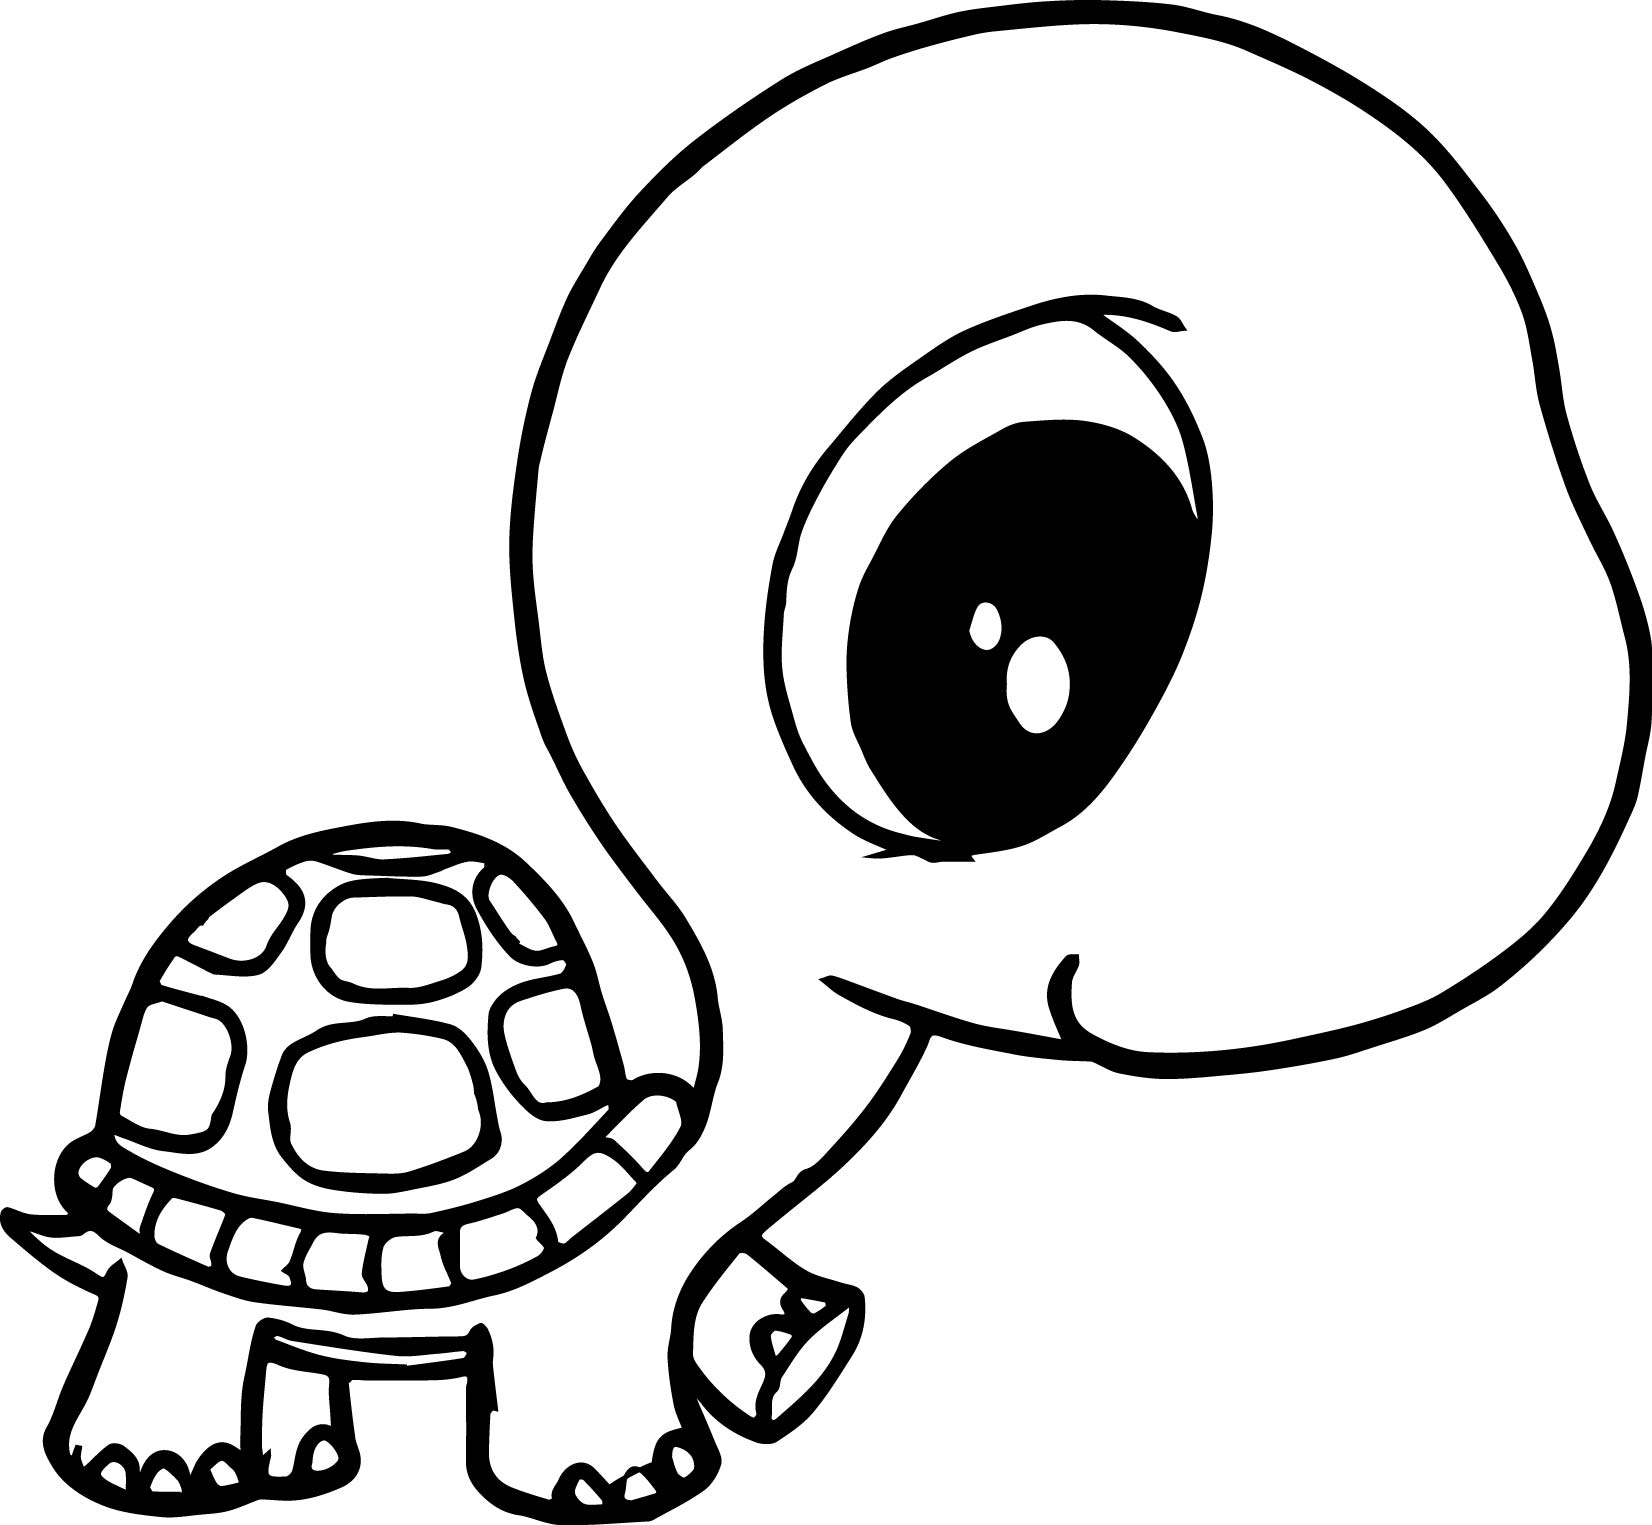 Big Head Small Body Tortoise Turtle Coloring Page Wecoloringpage